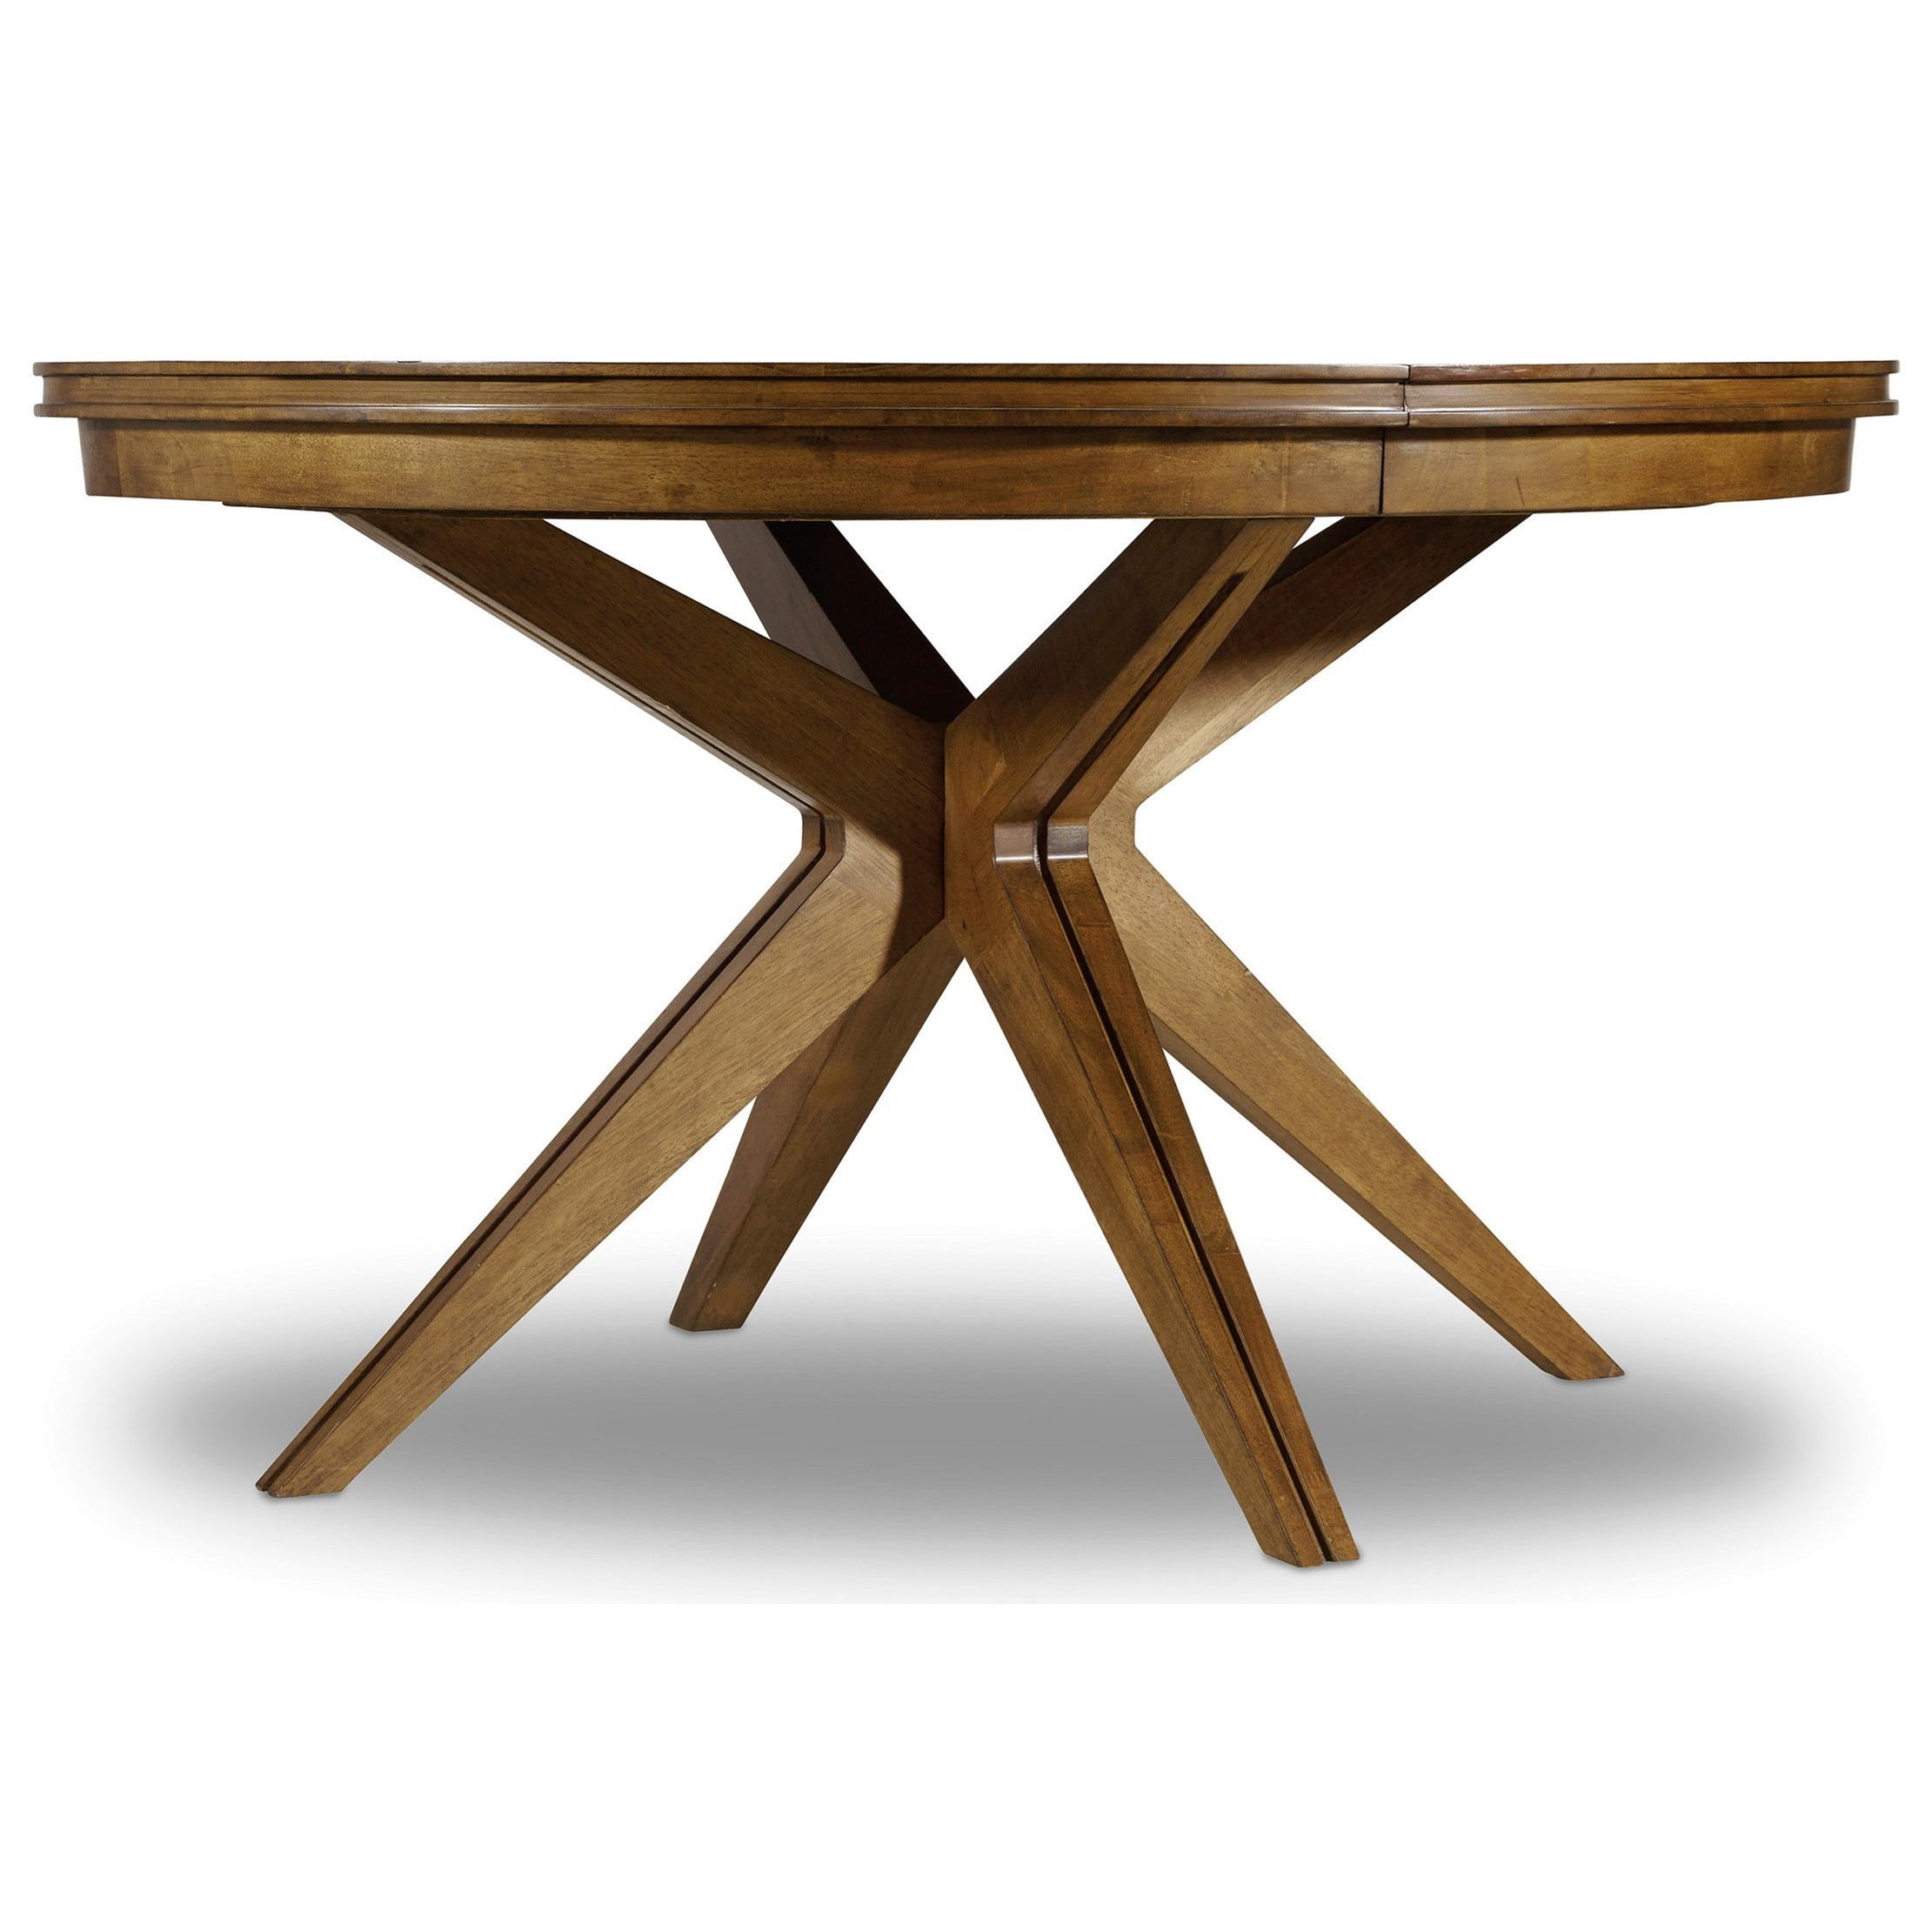 """Hooker Furniture Retropolitan 52"""" Round Dining Table with One 18"""" Leaf - Item Number: 5510-75201-MWD"""